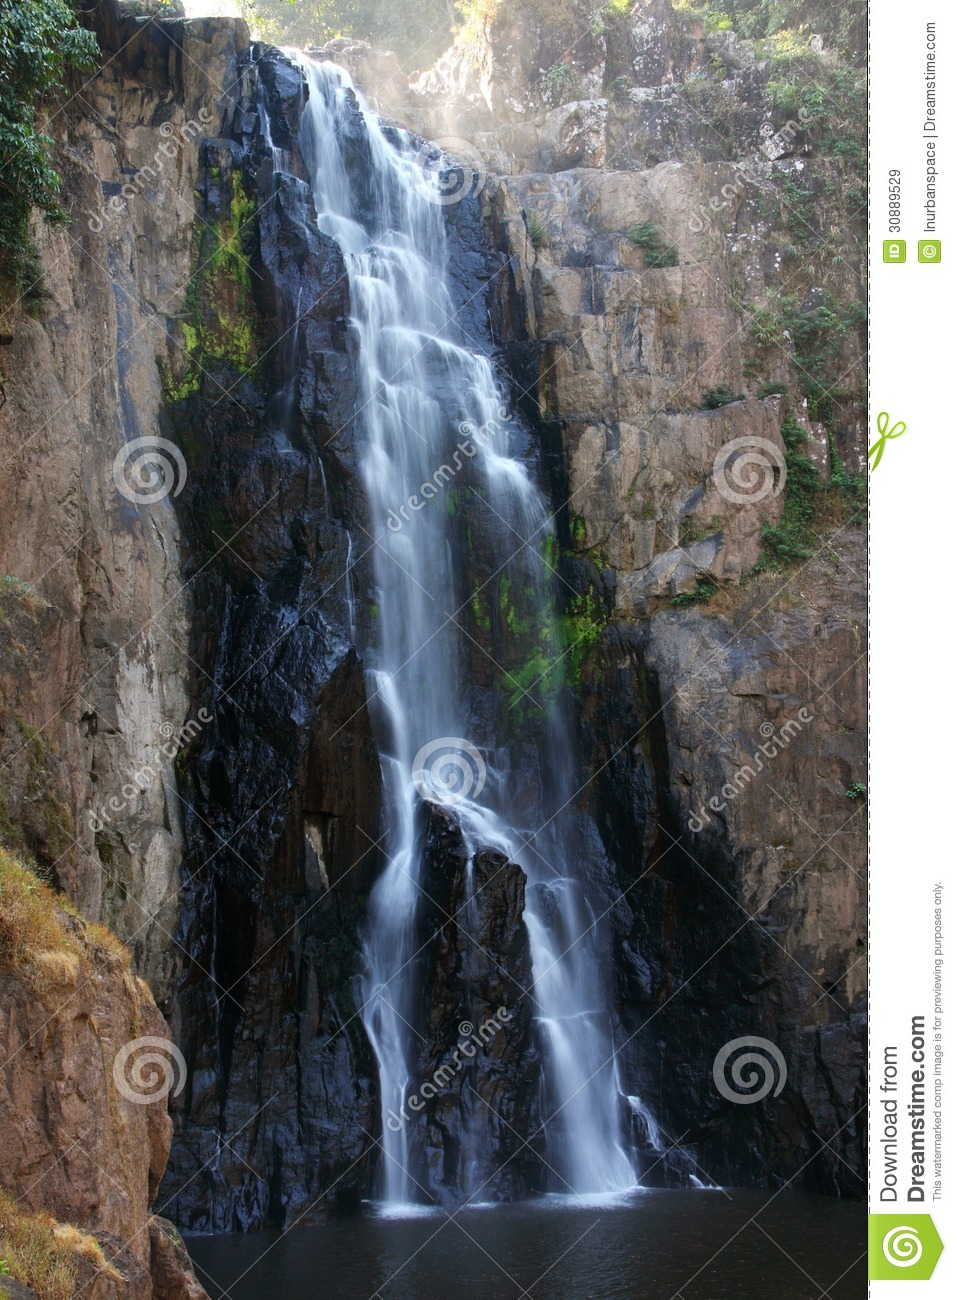 Fall River Wallpaper Cliff Of Waterfall Thailand Stock Image Image 30889529